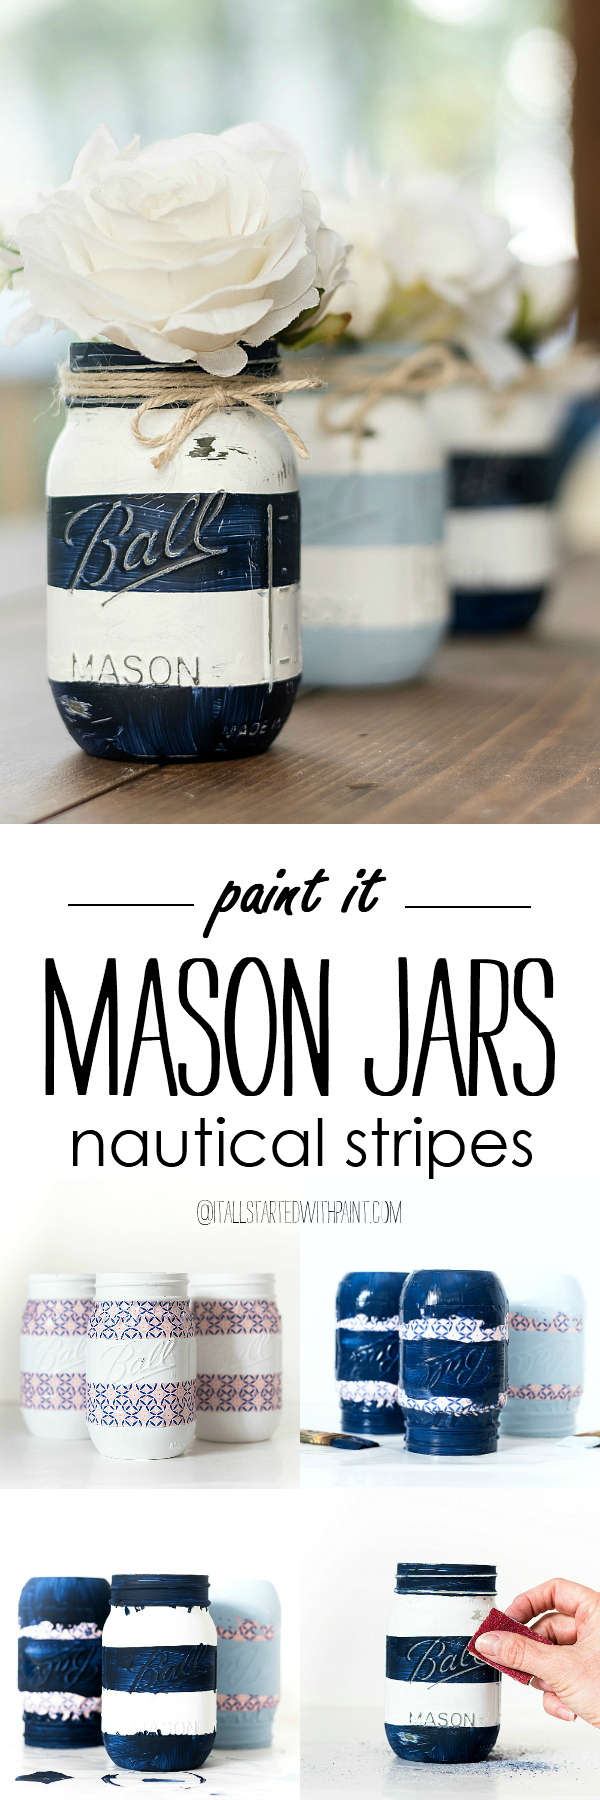 Nautical Mason Jars - Painted Distressed Mason Jars - Striped Mason Jars - Navy and White Mason Jars - Beachy Mason Jars - Coastal Stripe Mason Jars